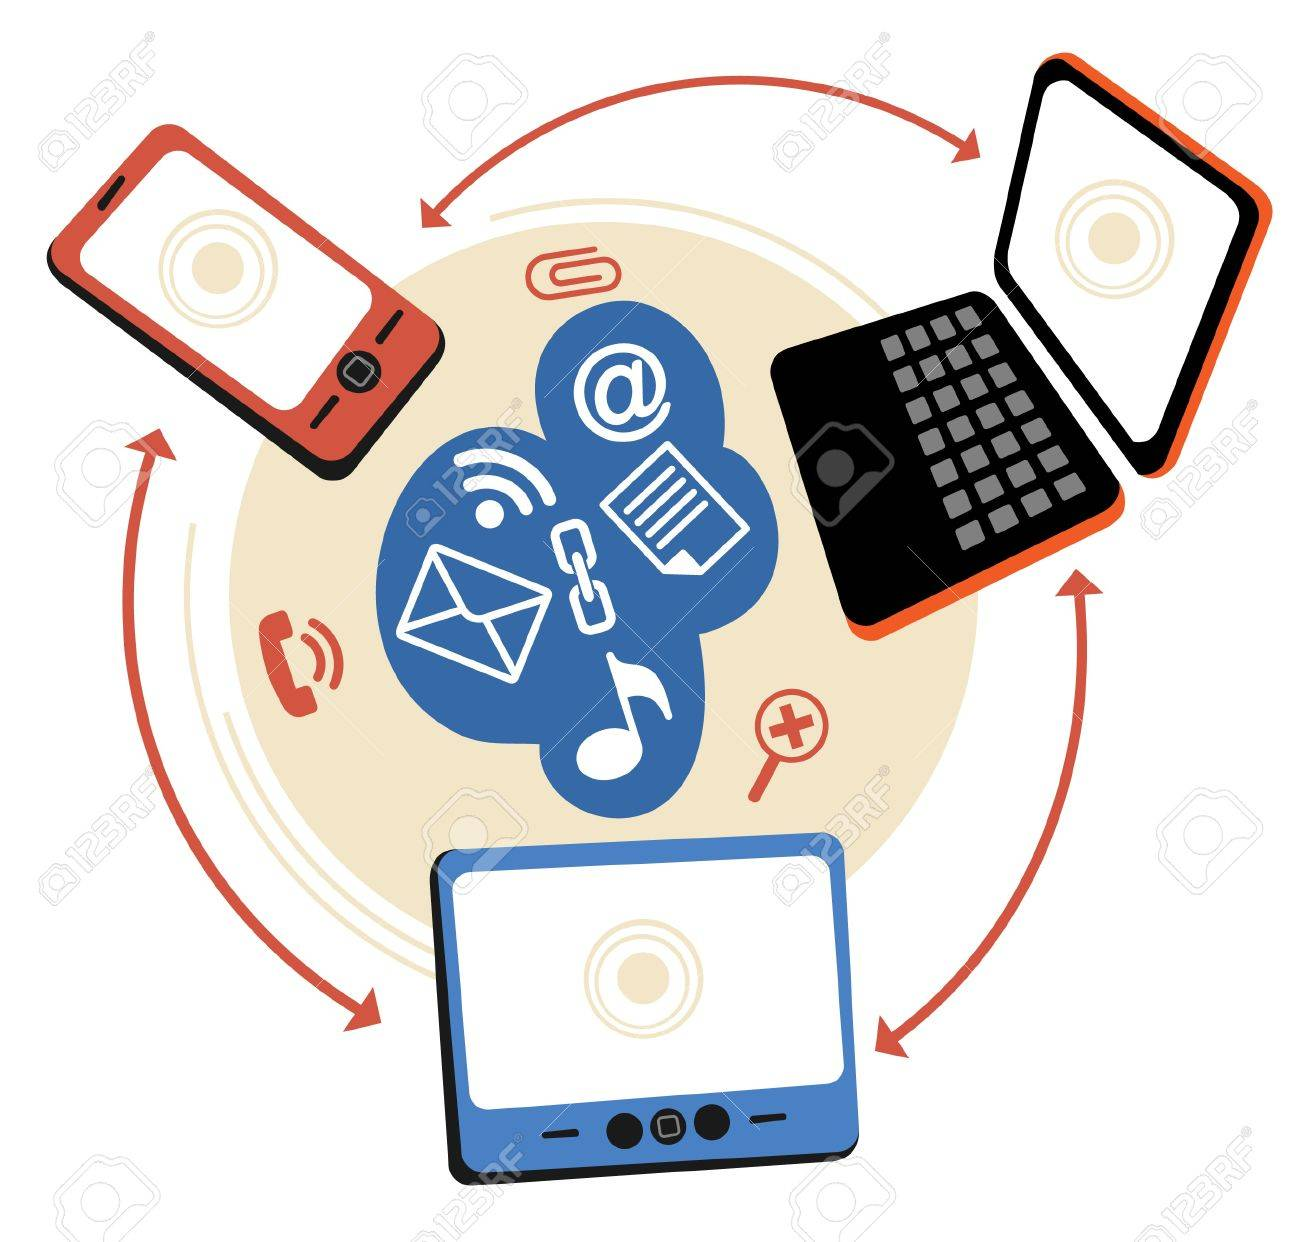 Technology Clipartrmation tec - Technology Clipart